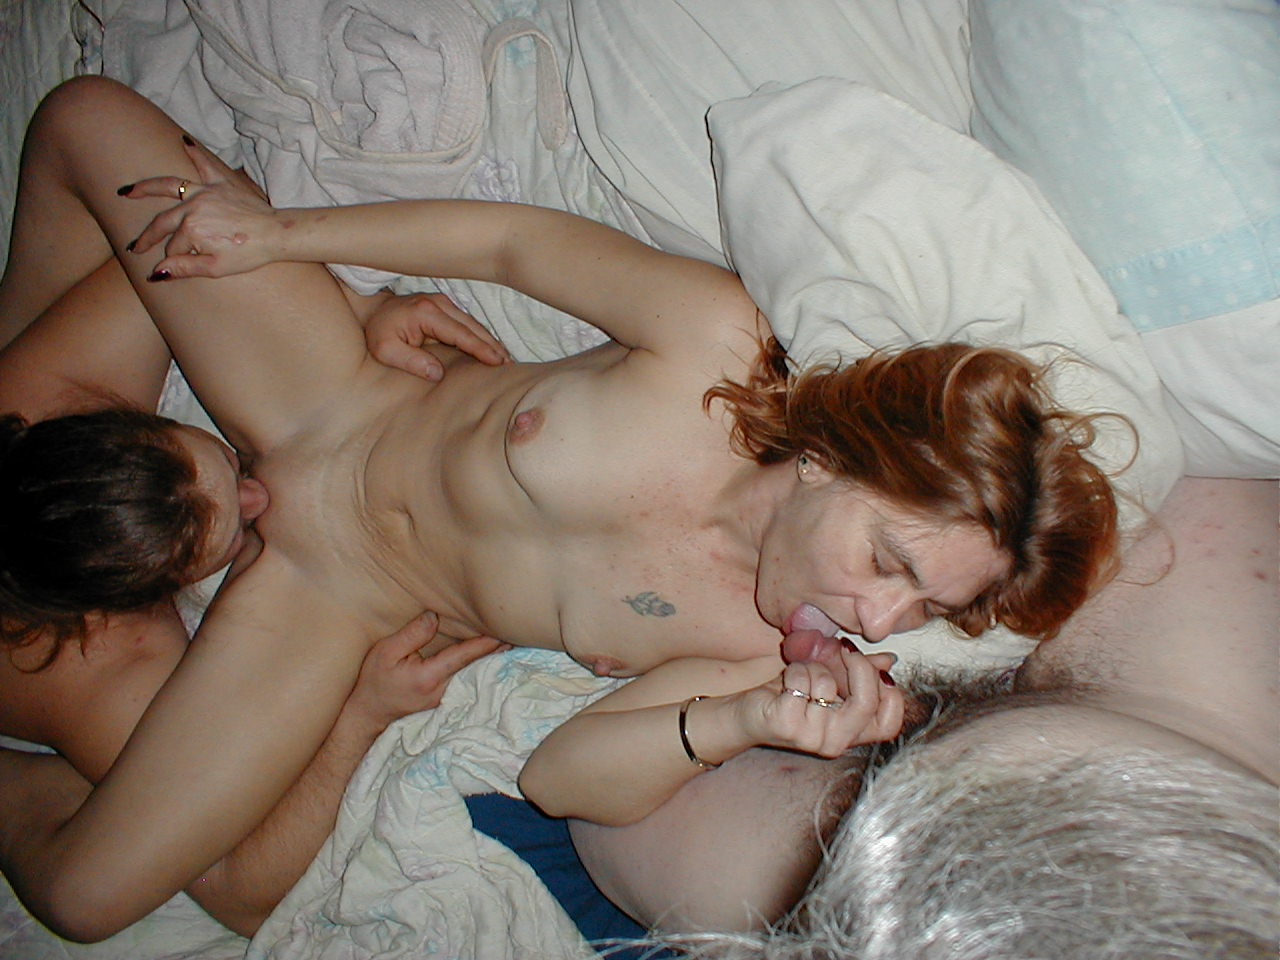 Wife with my friend licking her while she sucks me